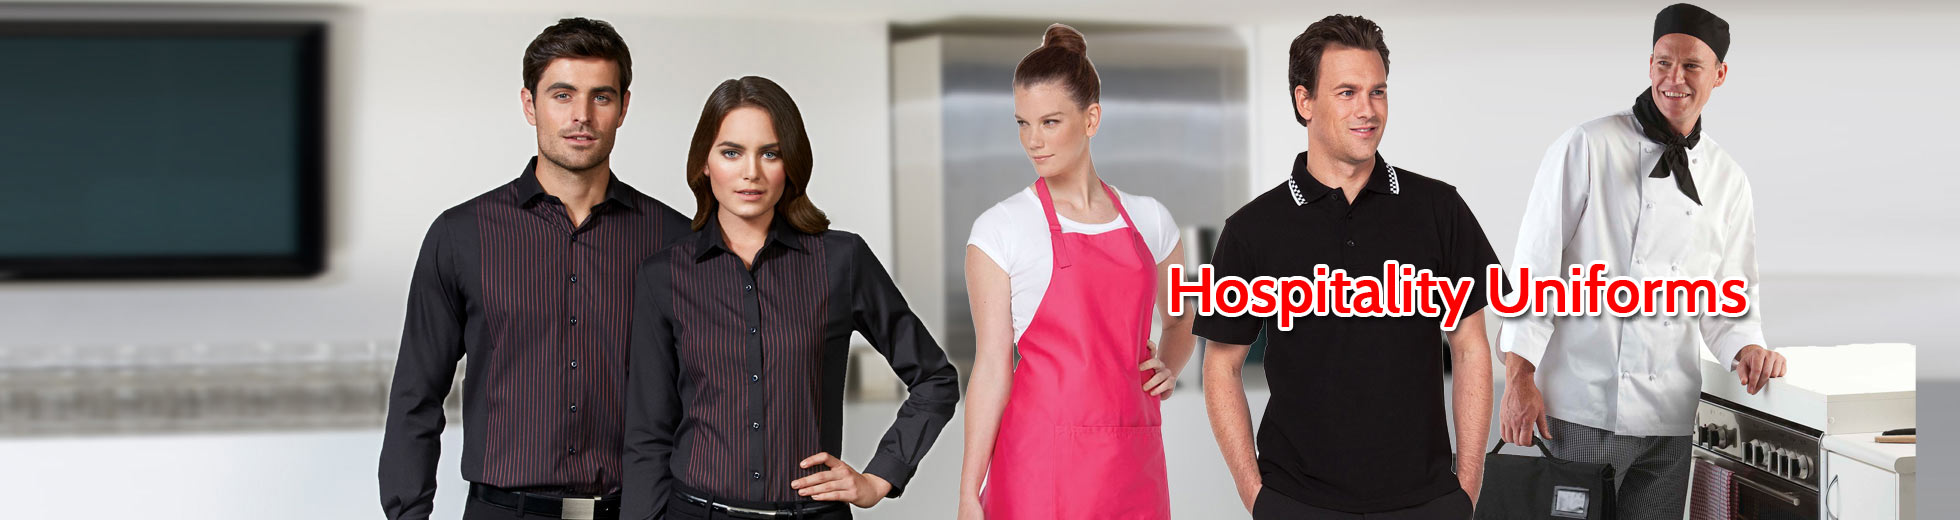 Distinctive Image Workwear Uniforms Footwear And More